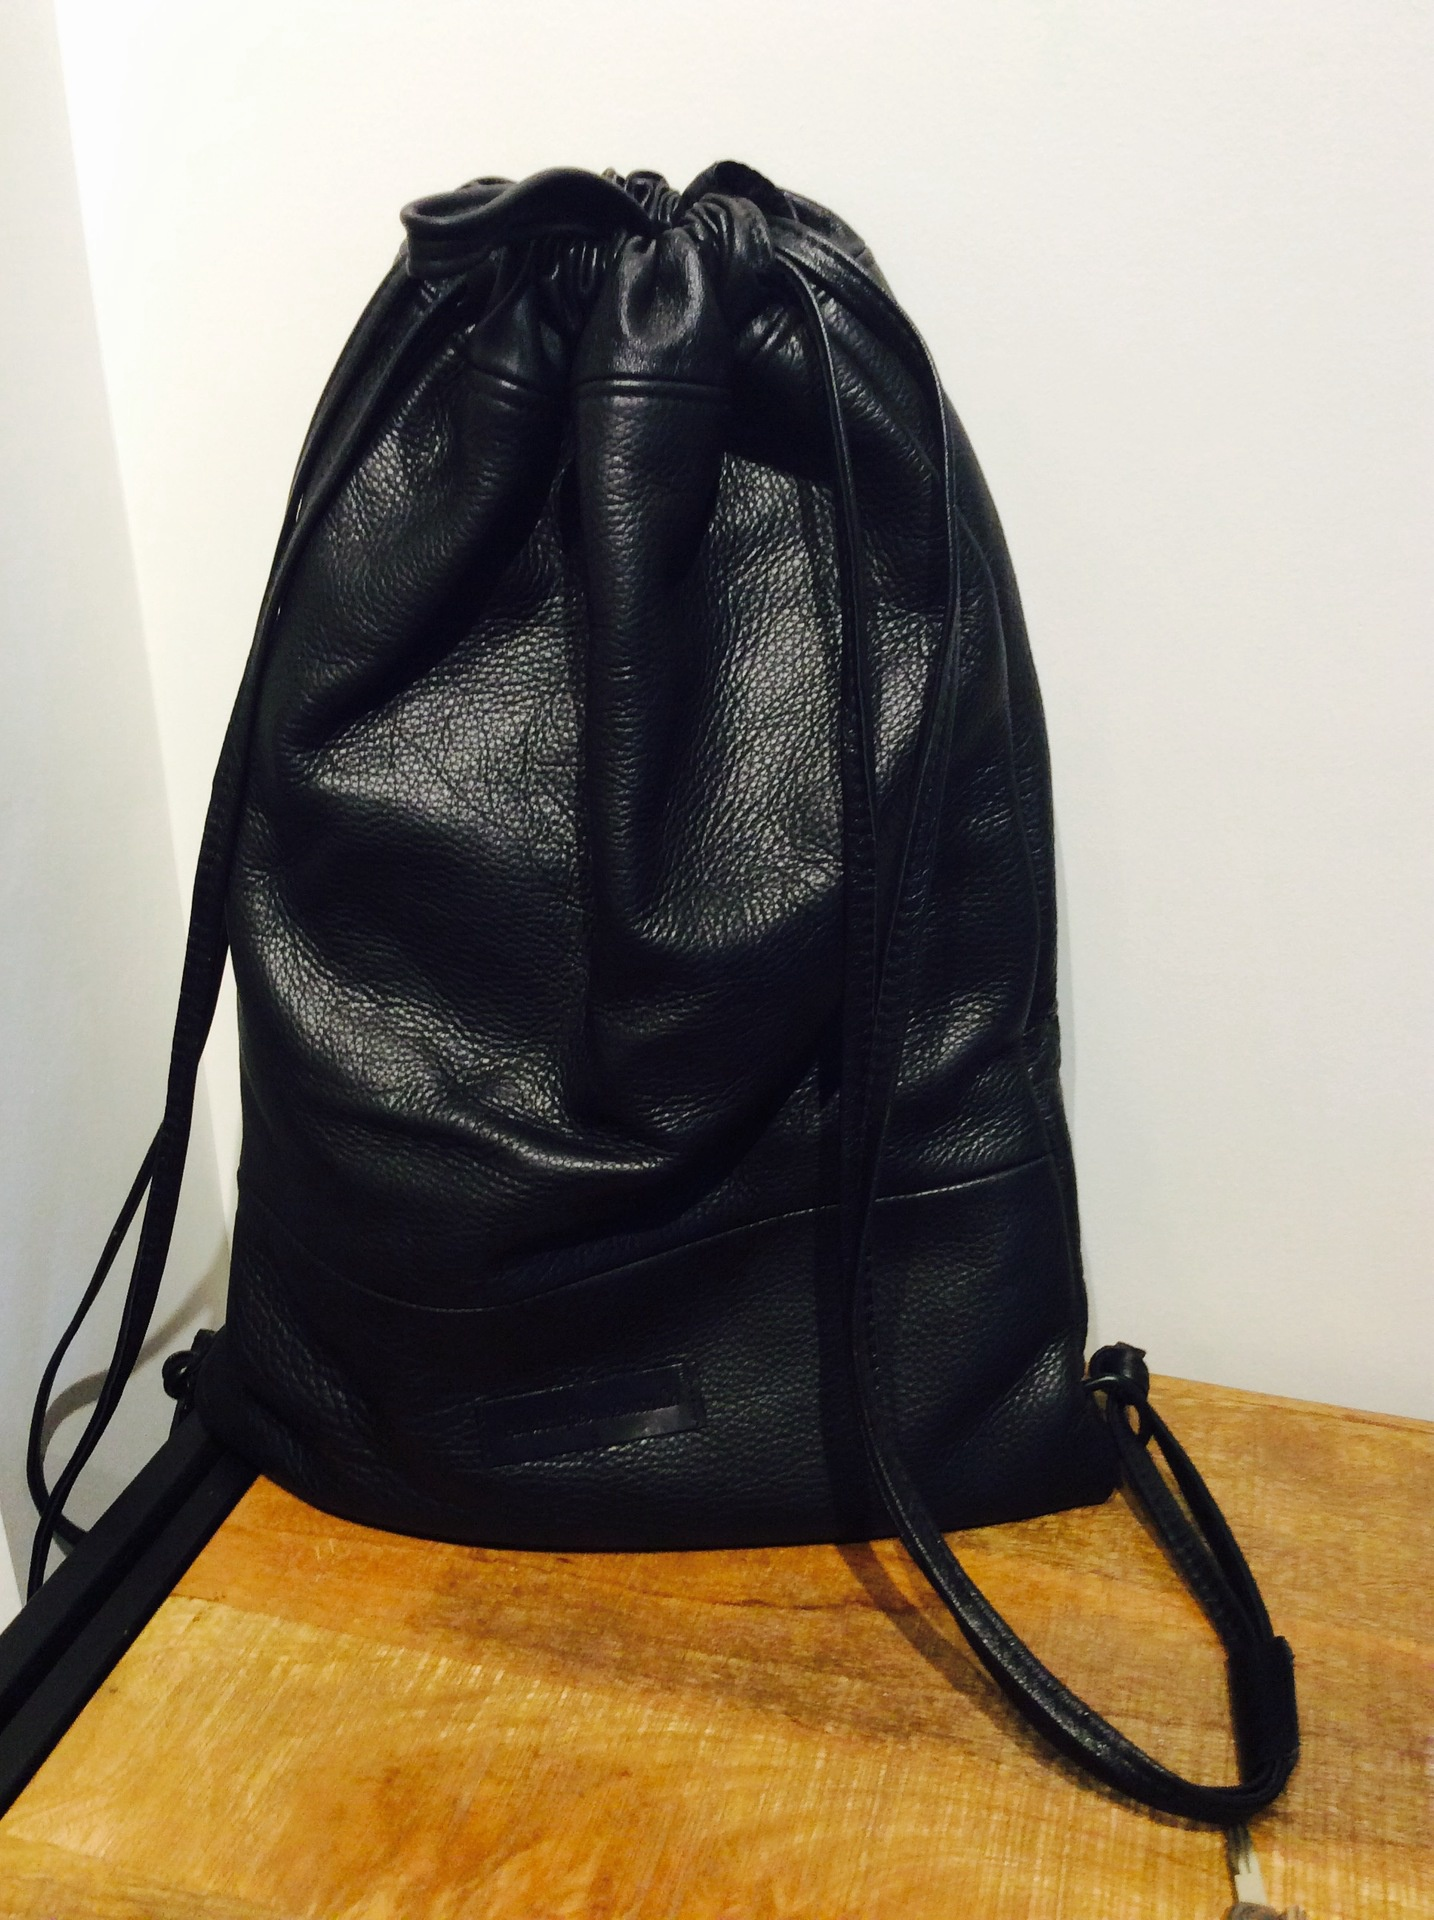 The 'Sack' - Black Italian Leather Backpack